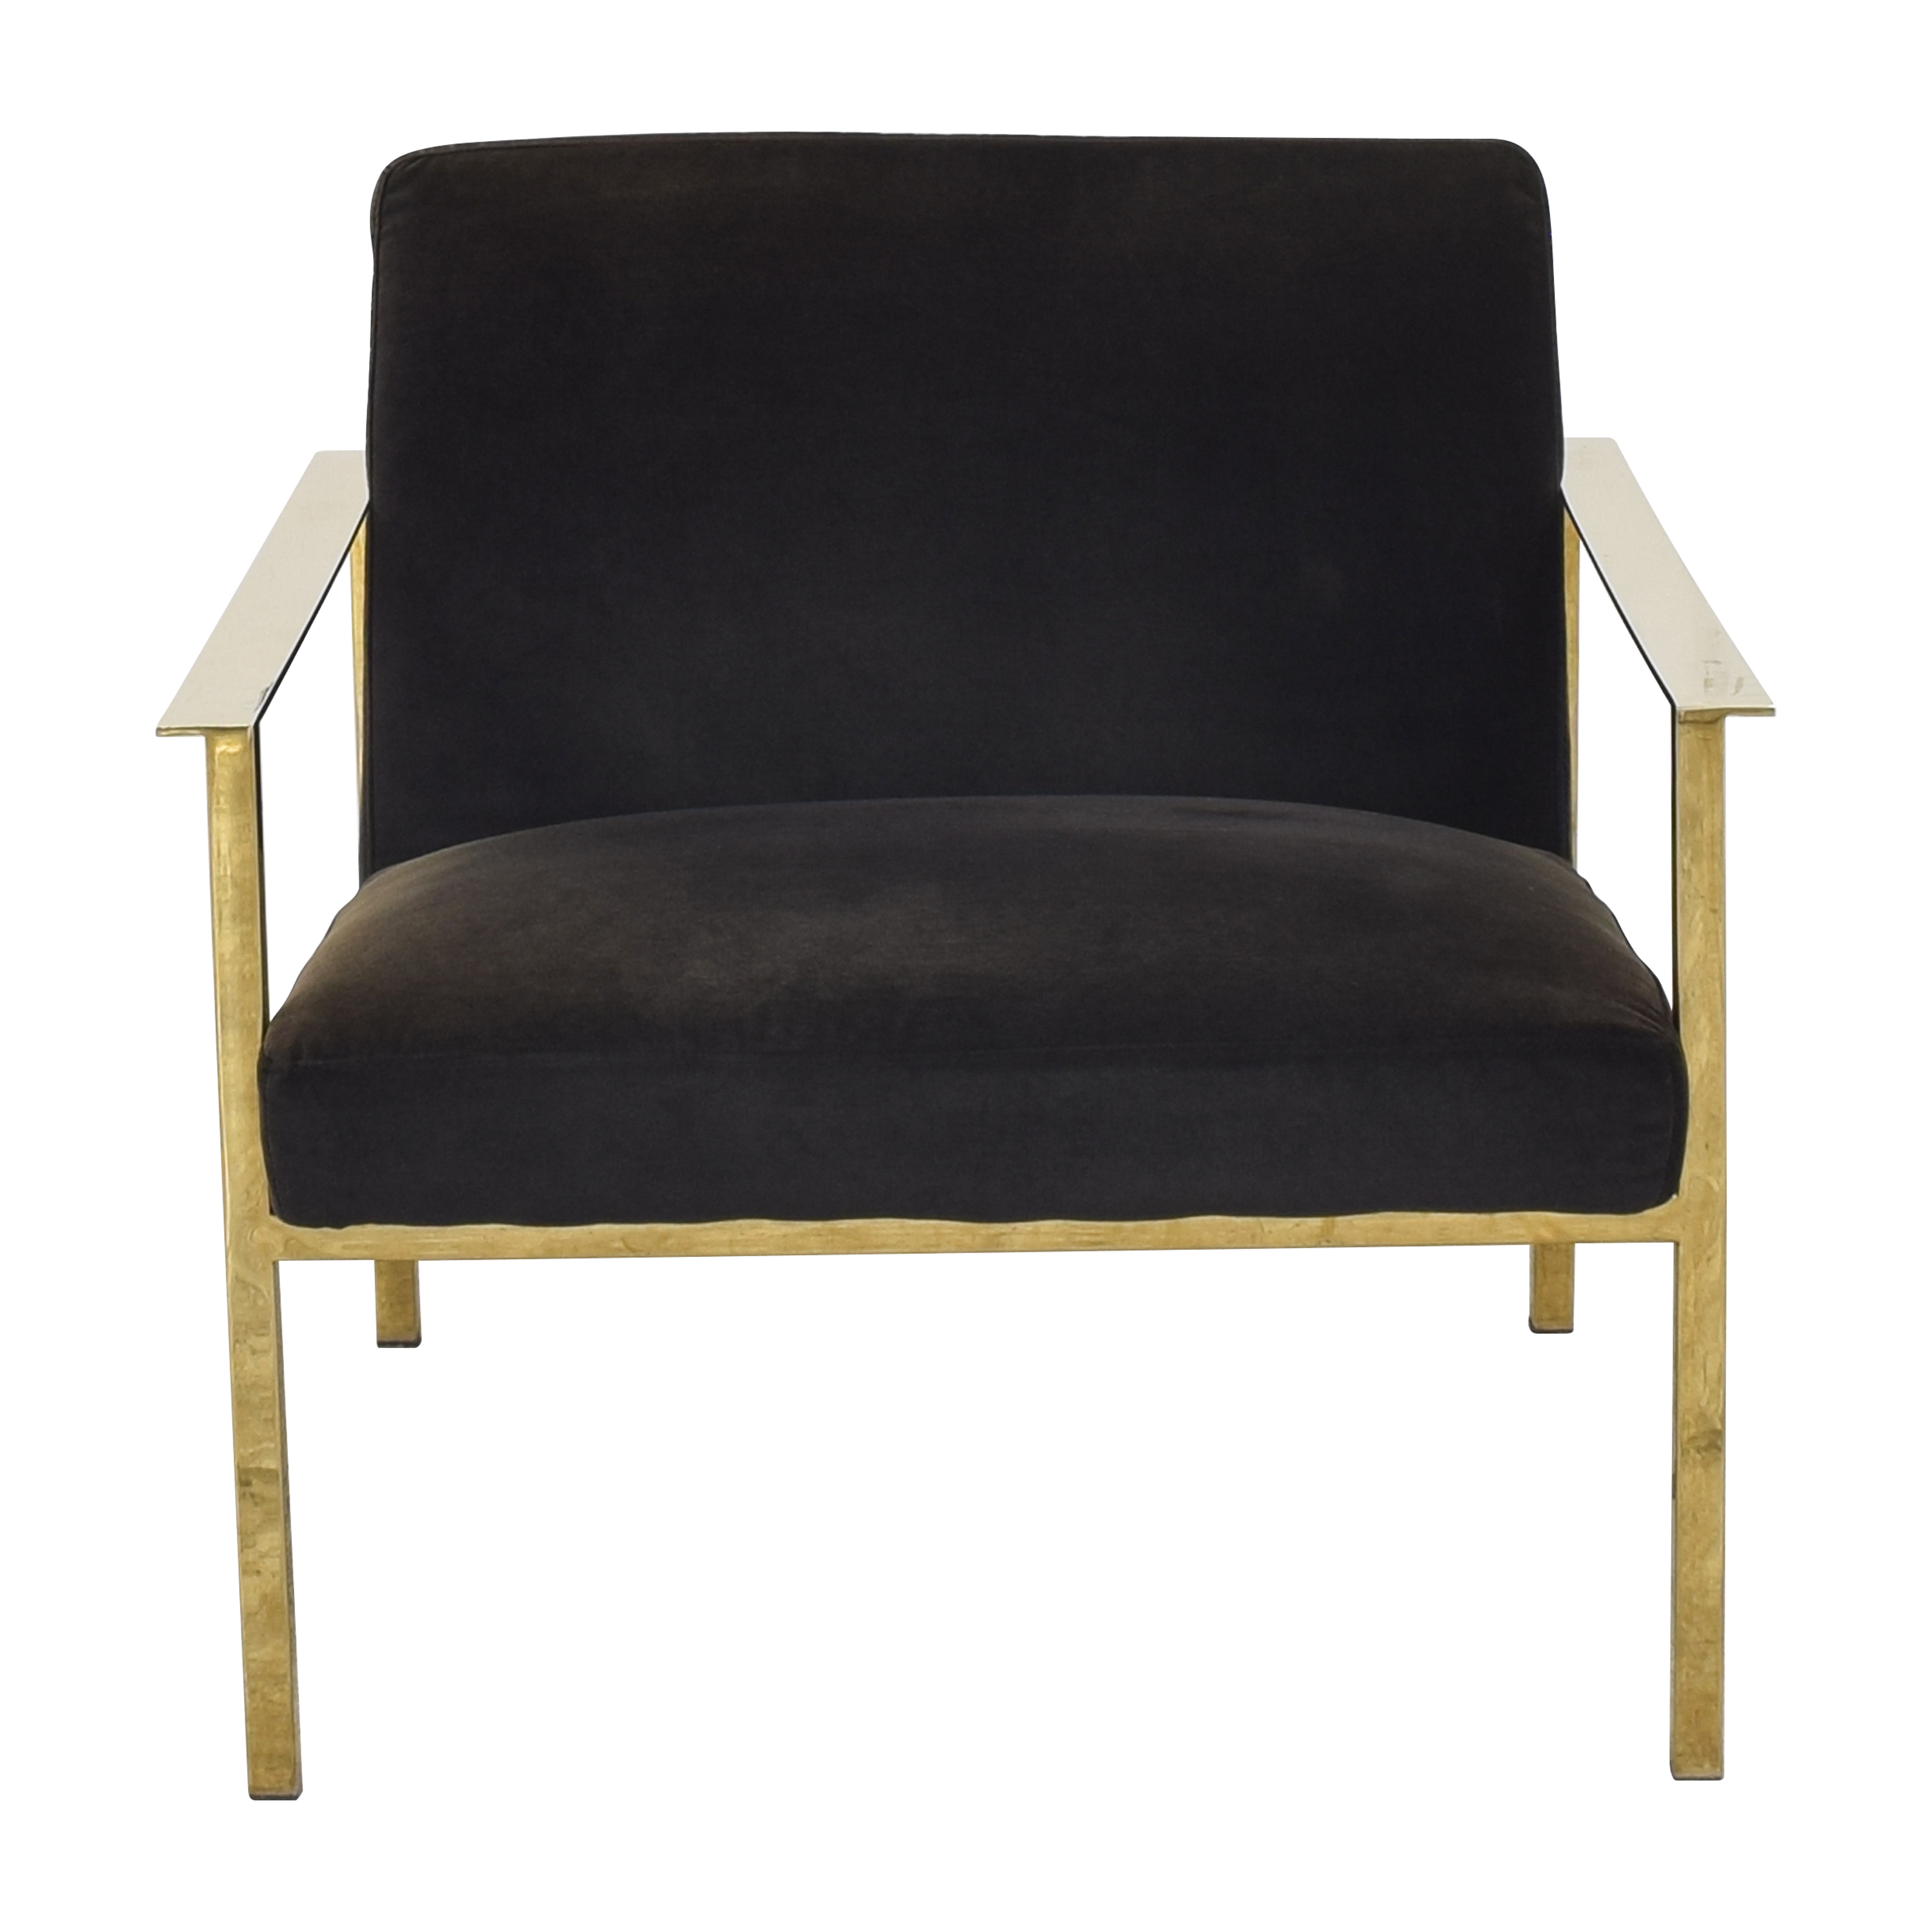 shop CB2 CB2 Cue Chair online